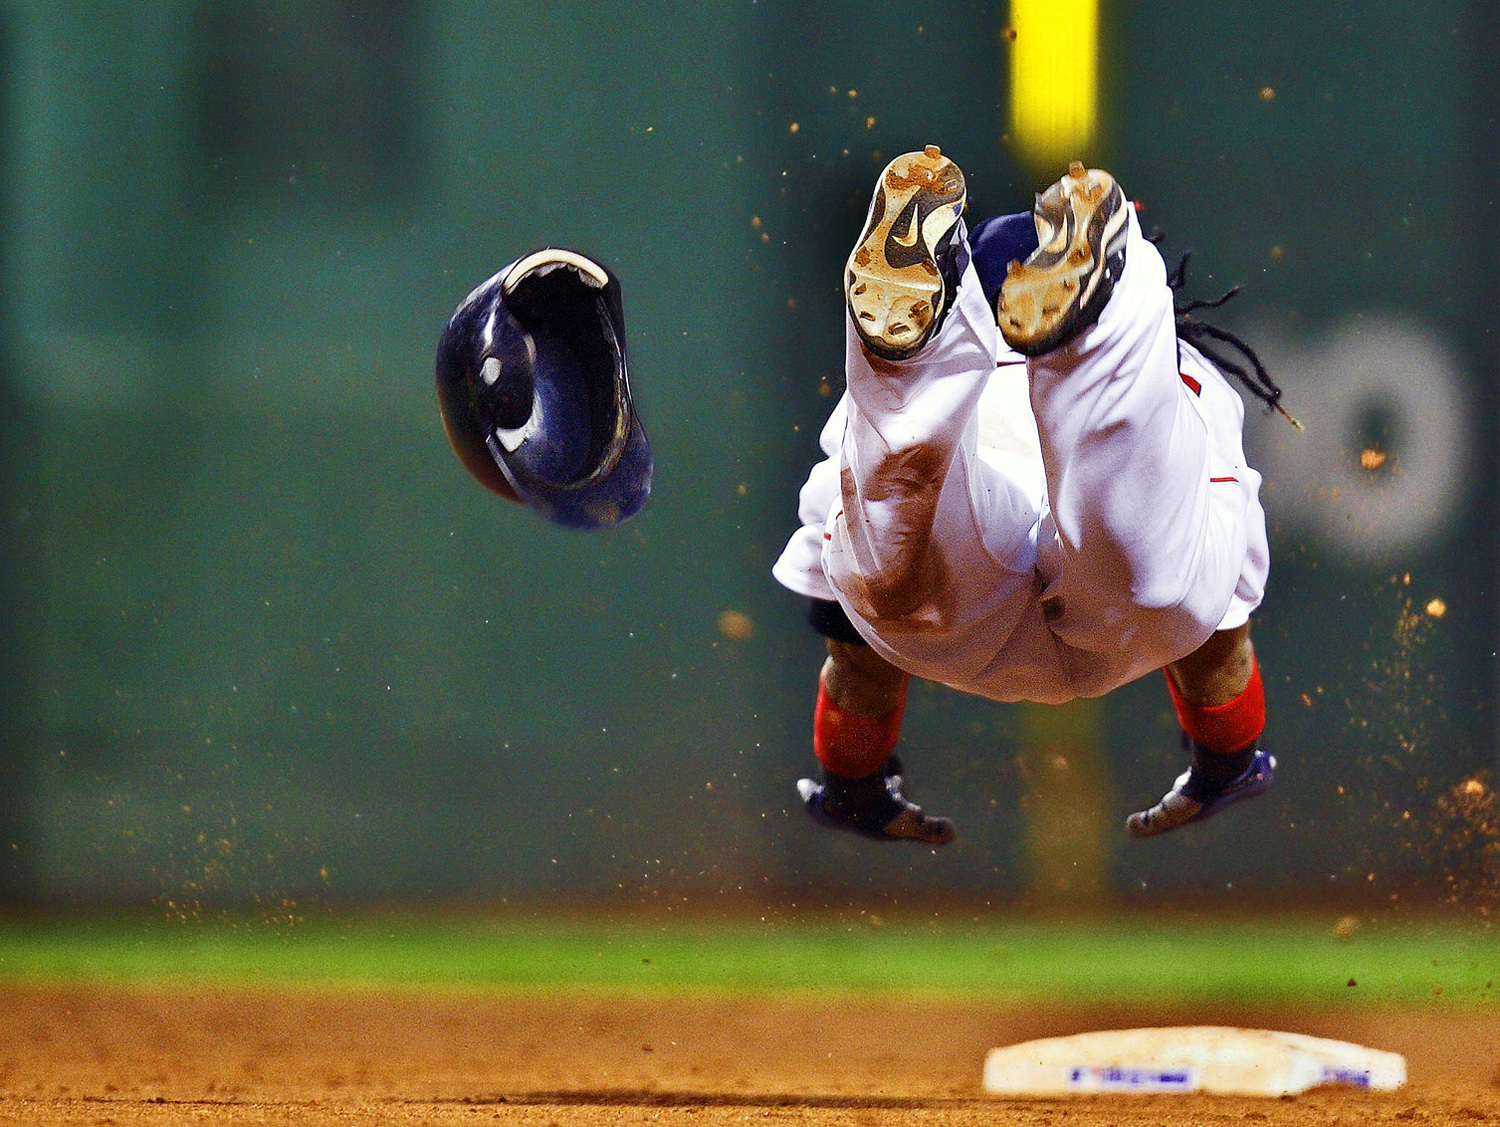 Manny Ramirez of the Boston Red Sox slides head first with his helmet flying off.